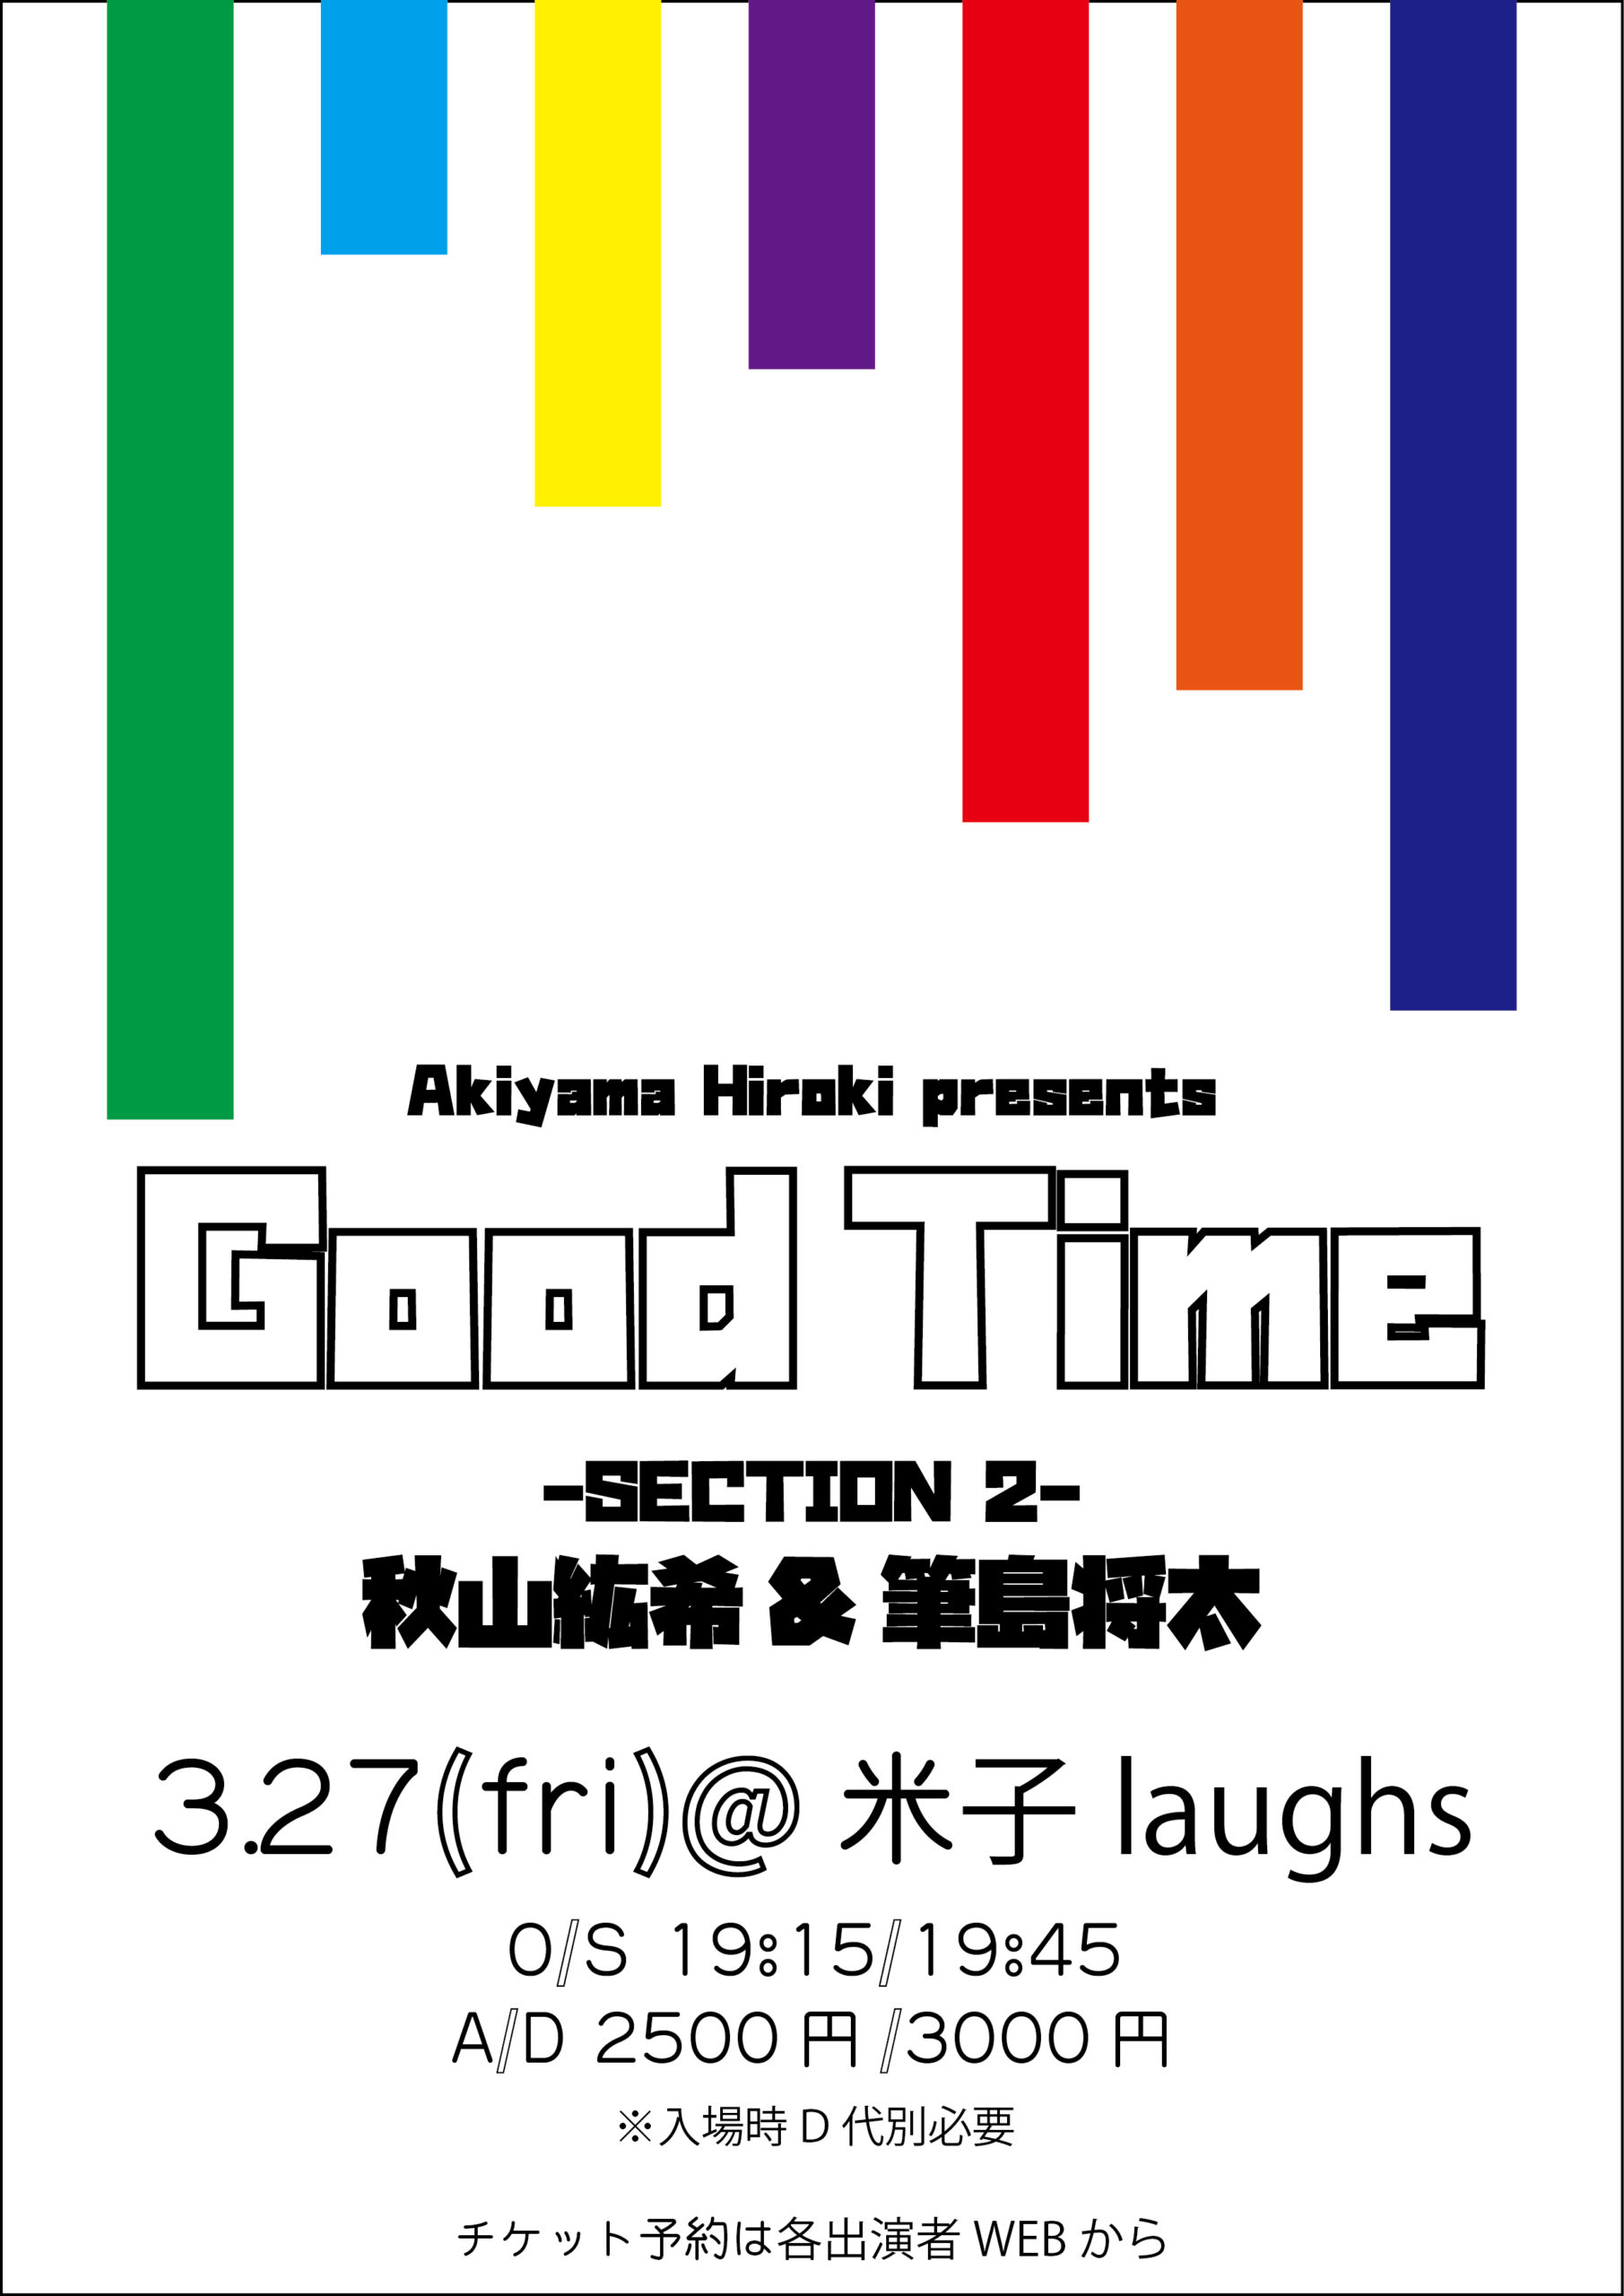 2020年3月27日(金)Good Time-section2- @ 米子laughs